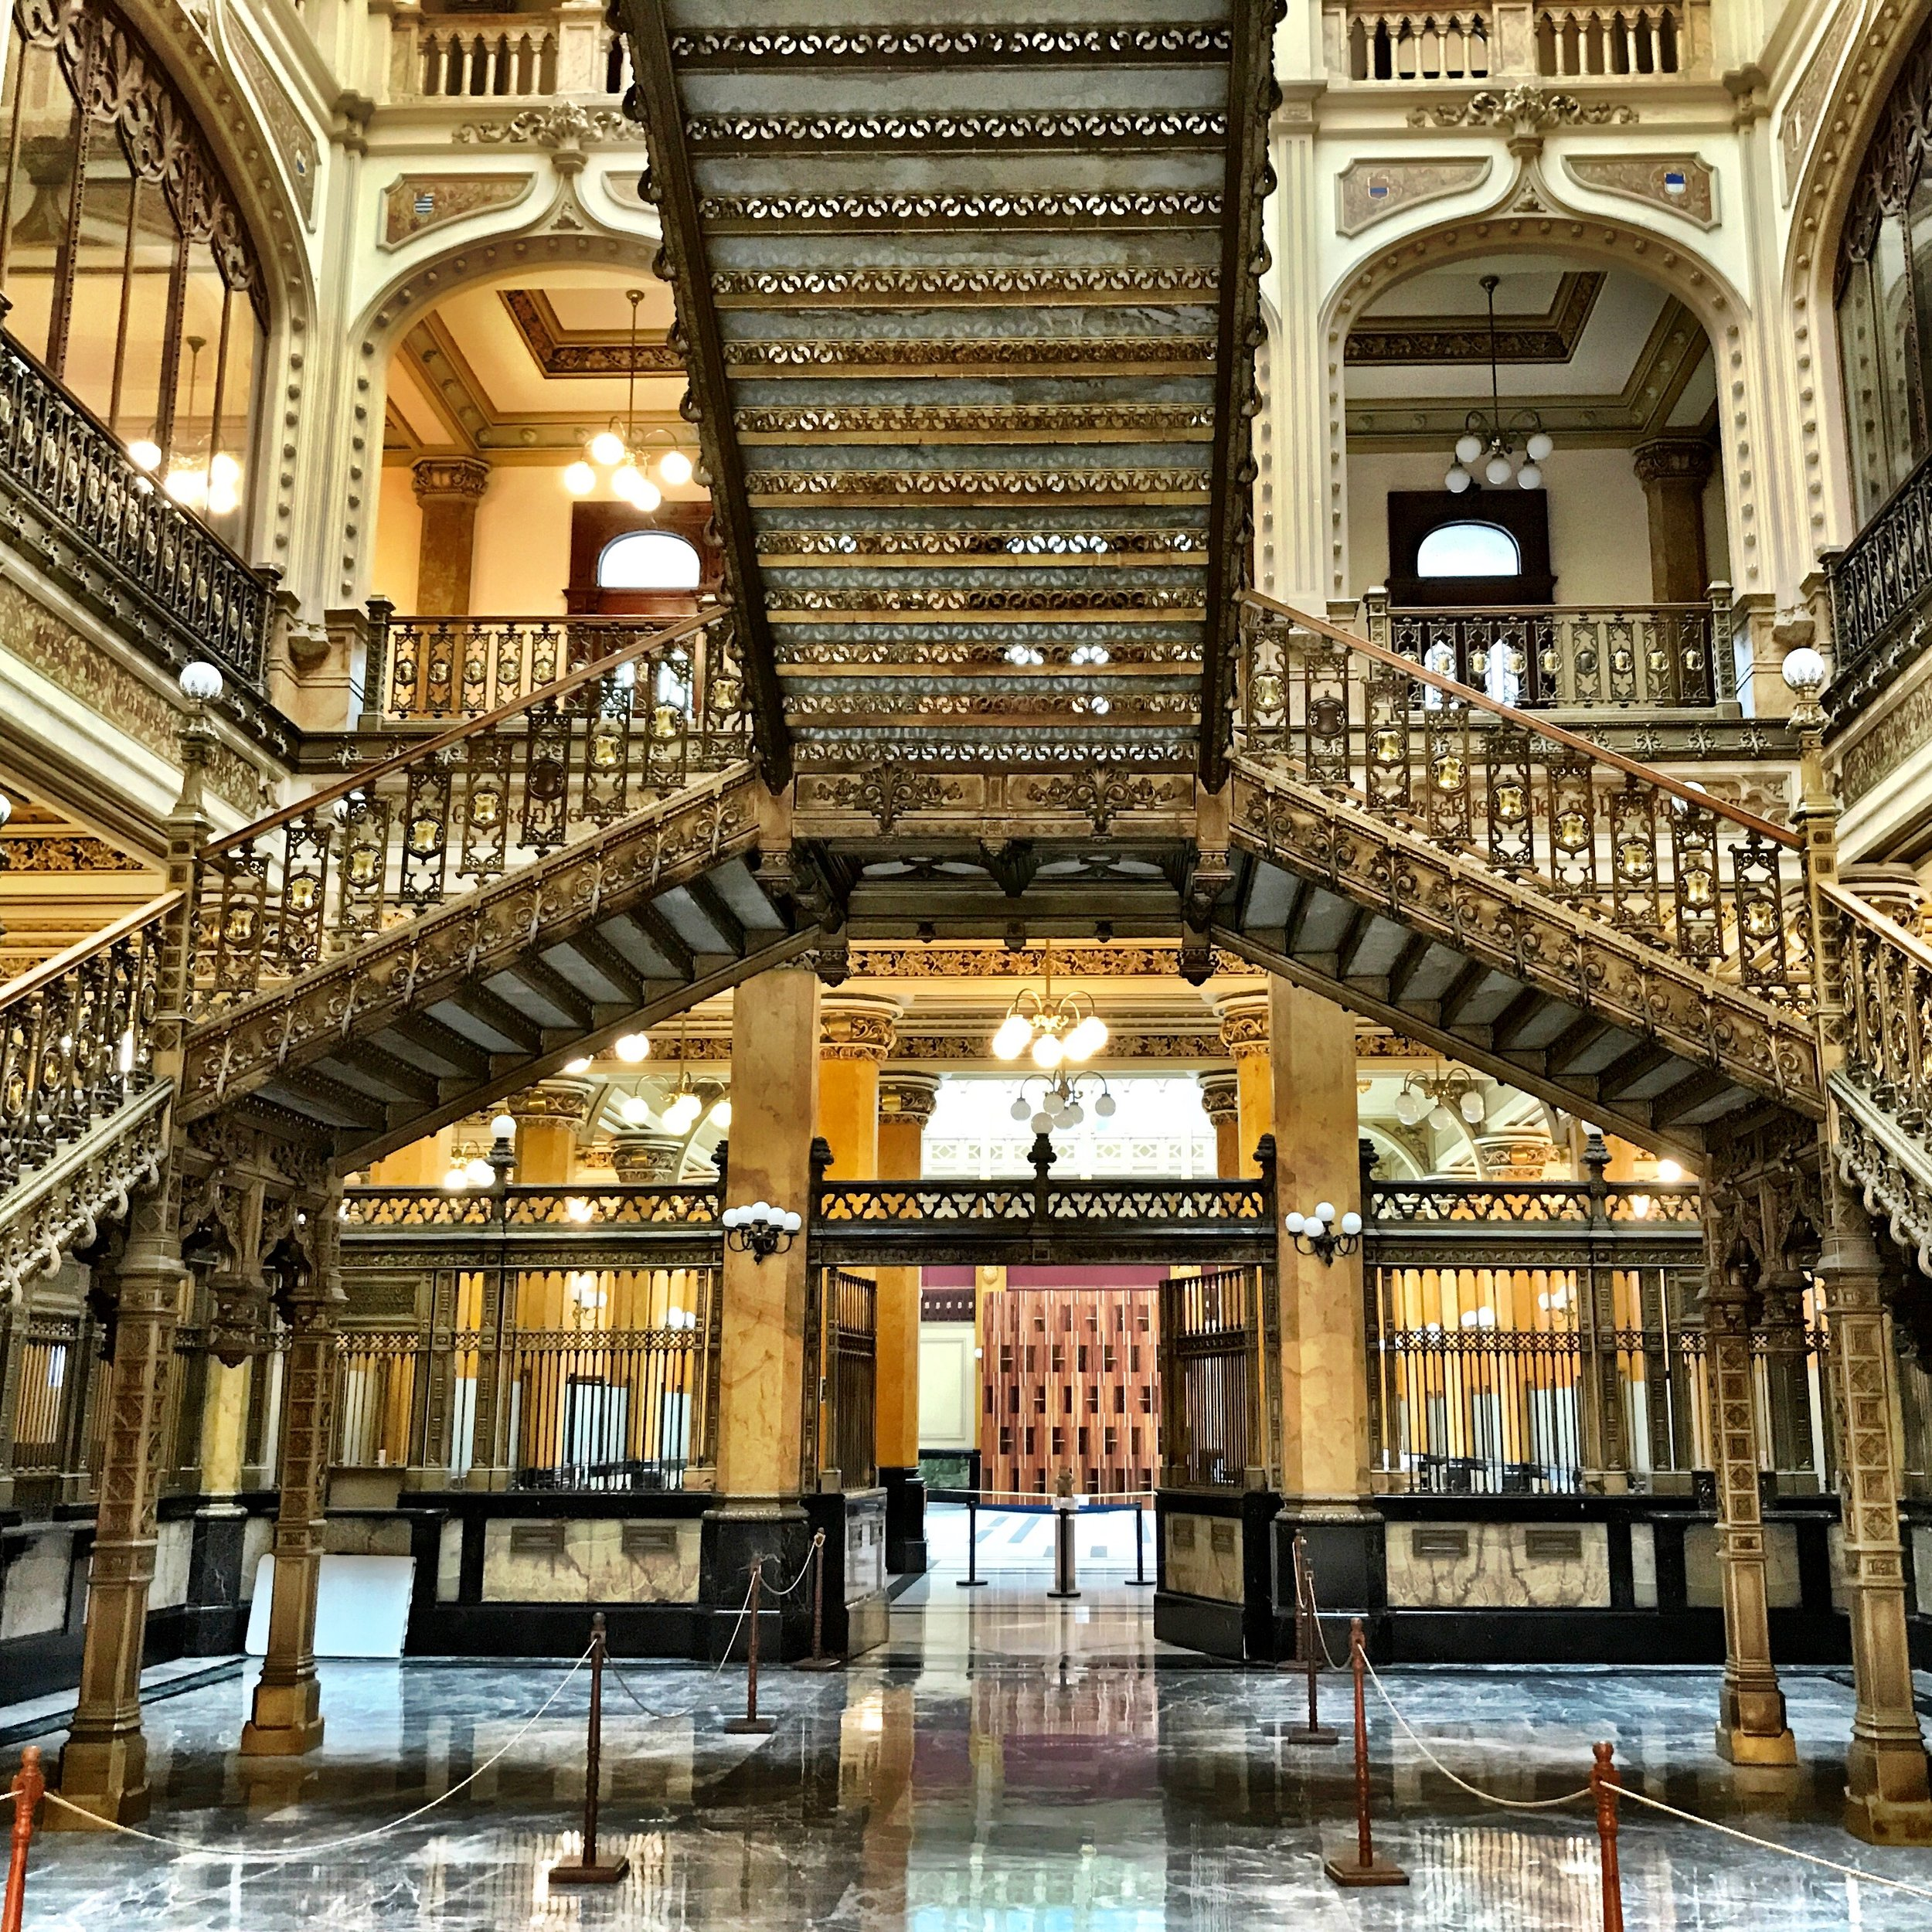 Since you're in the area, you should pop into the Palacio Postal just to check out the amazing staircase